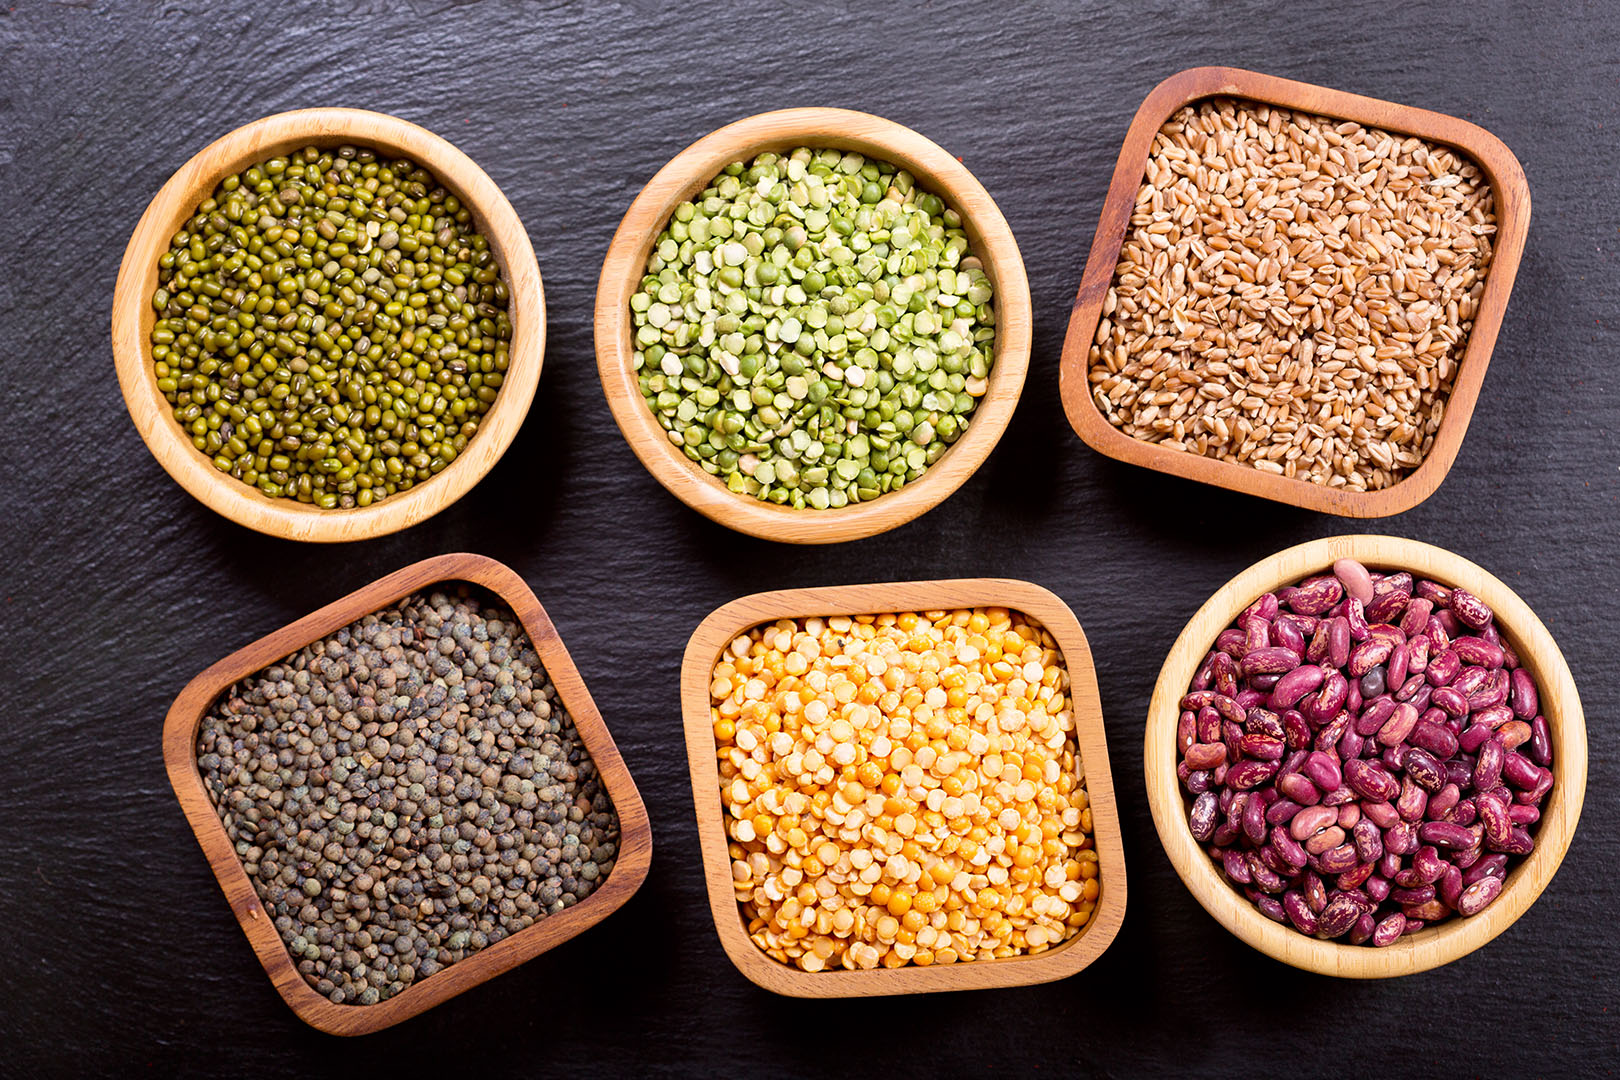 various cereals, seeds, beans and grains